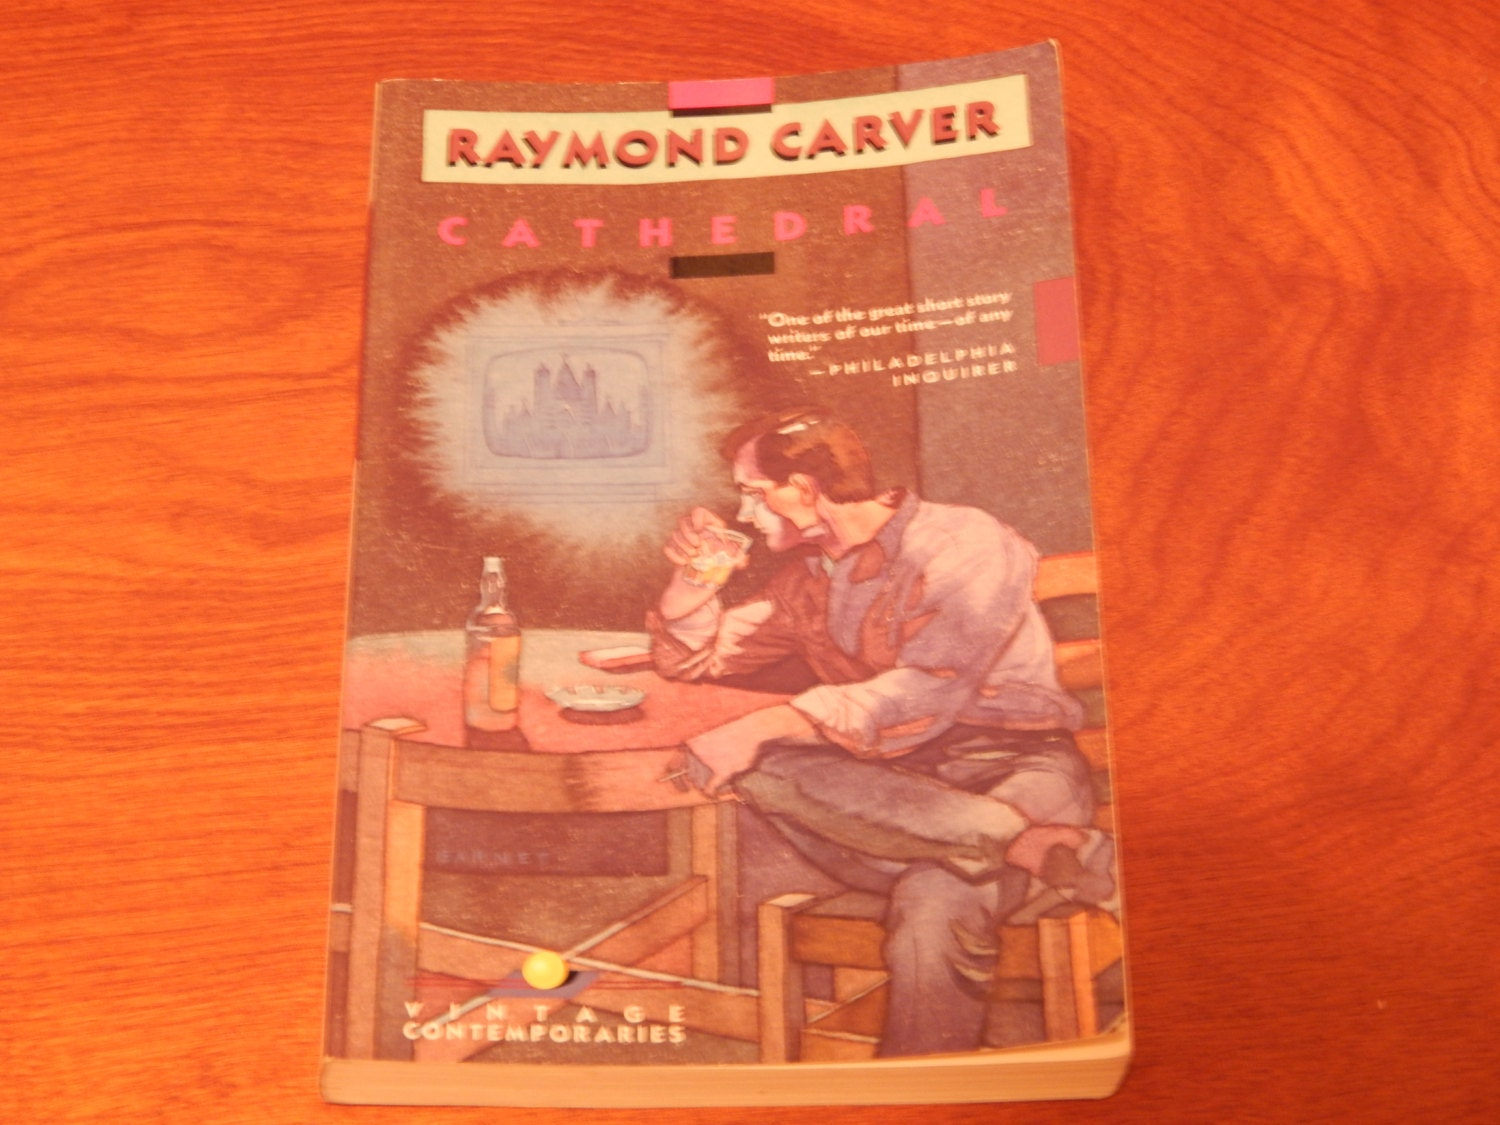 neighbors by raymond carver analysis